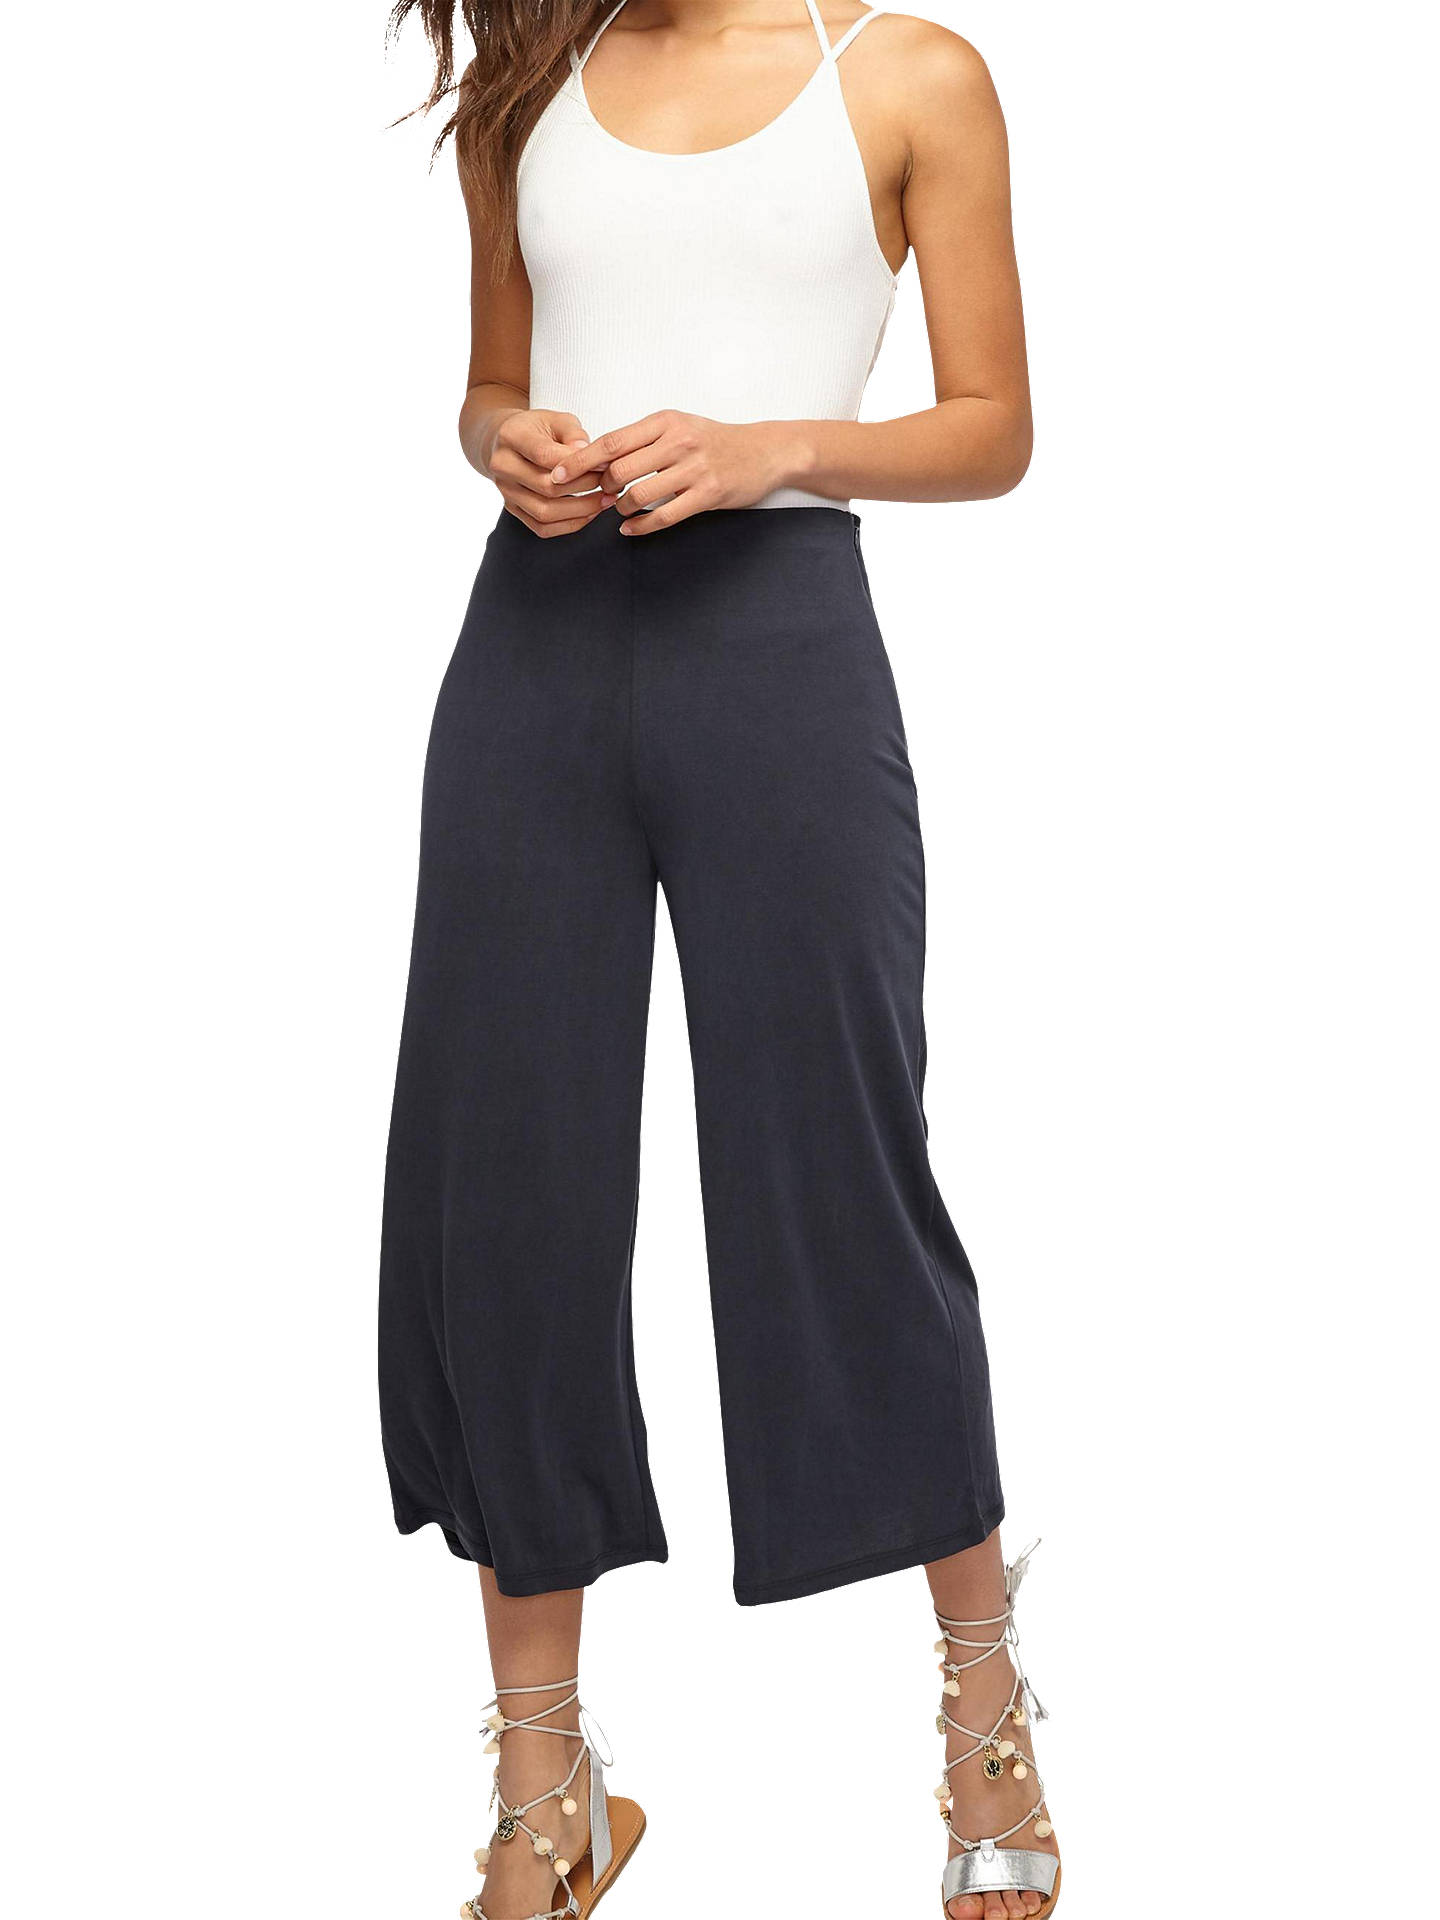 ca001952f0 Buy Miss Selfridge Soft Touch Wide Leg Trousers, Black, 6 Online at  johnlewis.